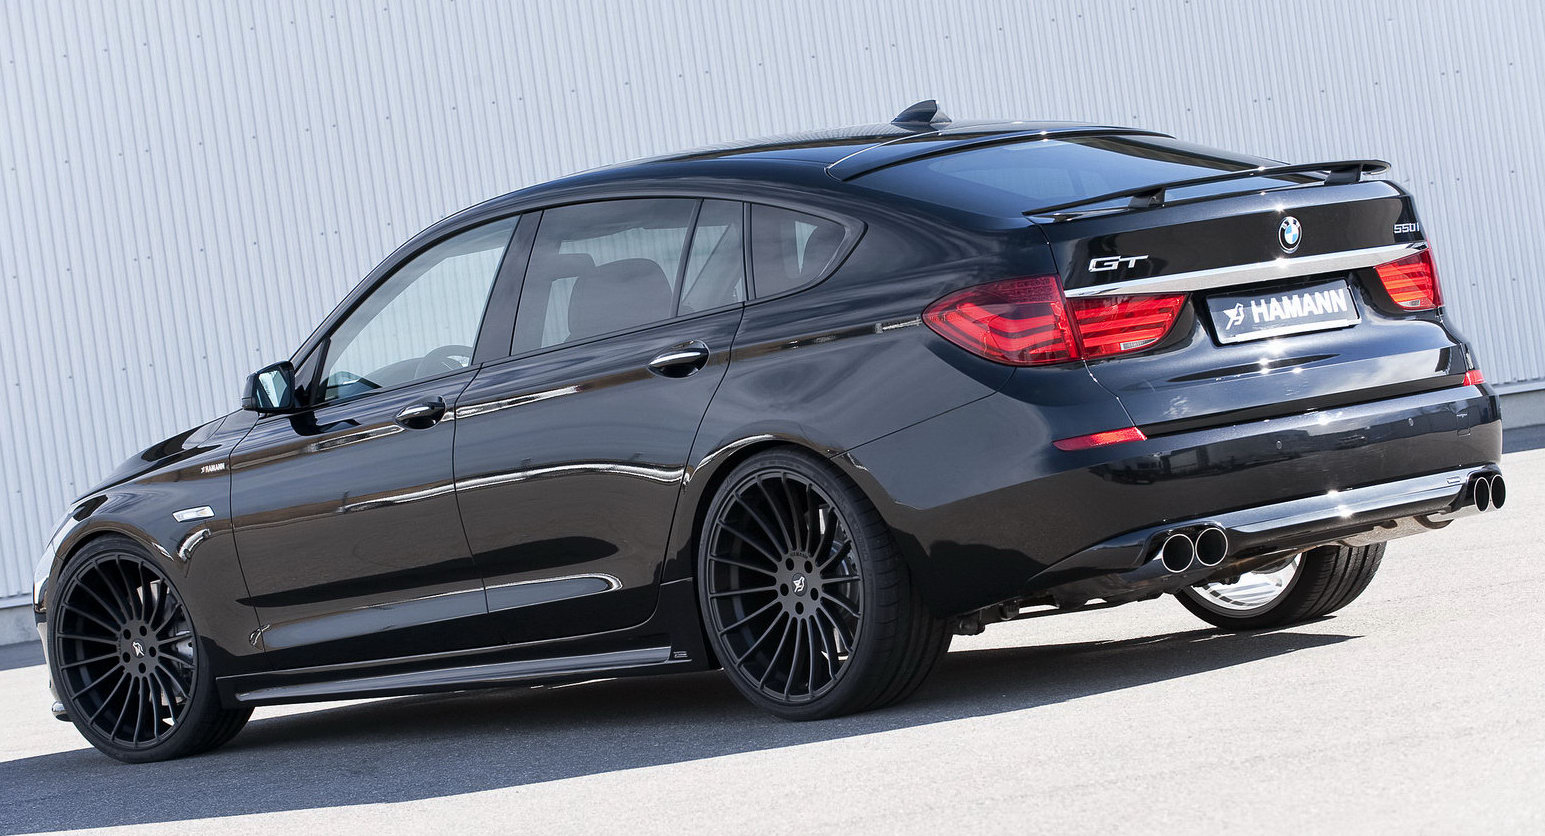 hamann motorsports reinterprets the bmw 530d gt carscoops. Black Bedroom Furniture Sets. Home Design Ideas